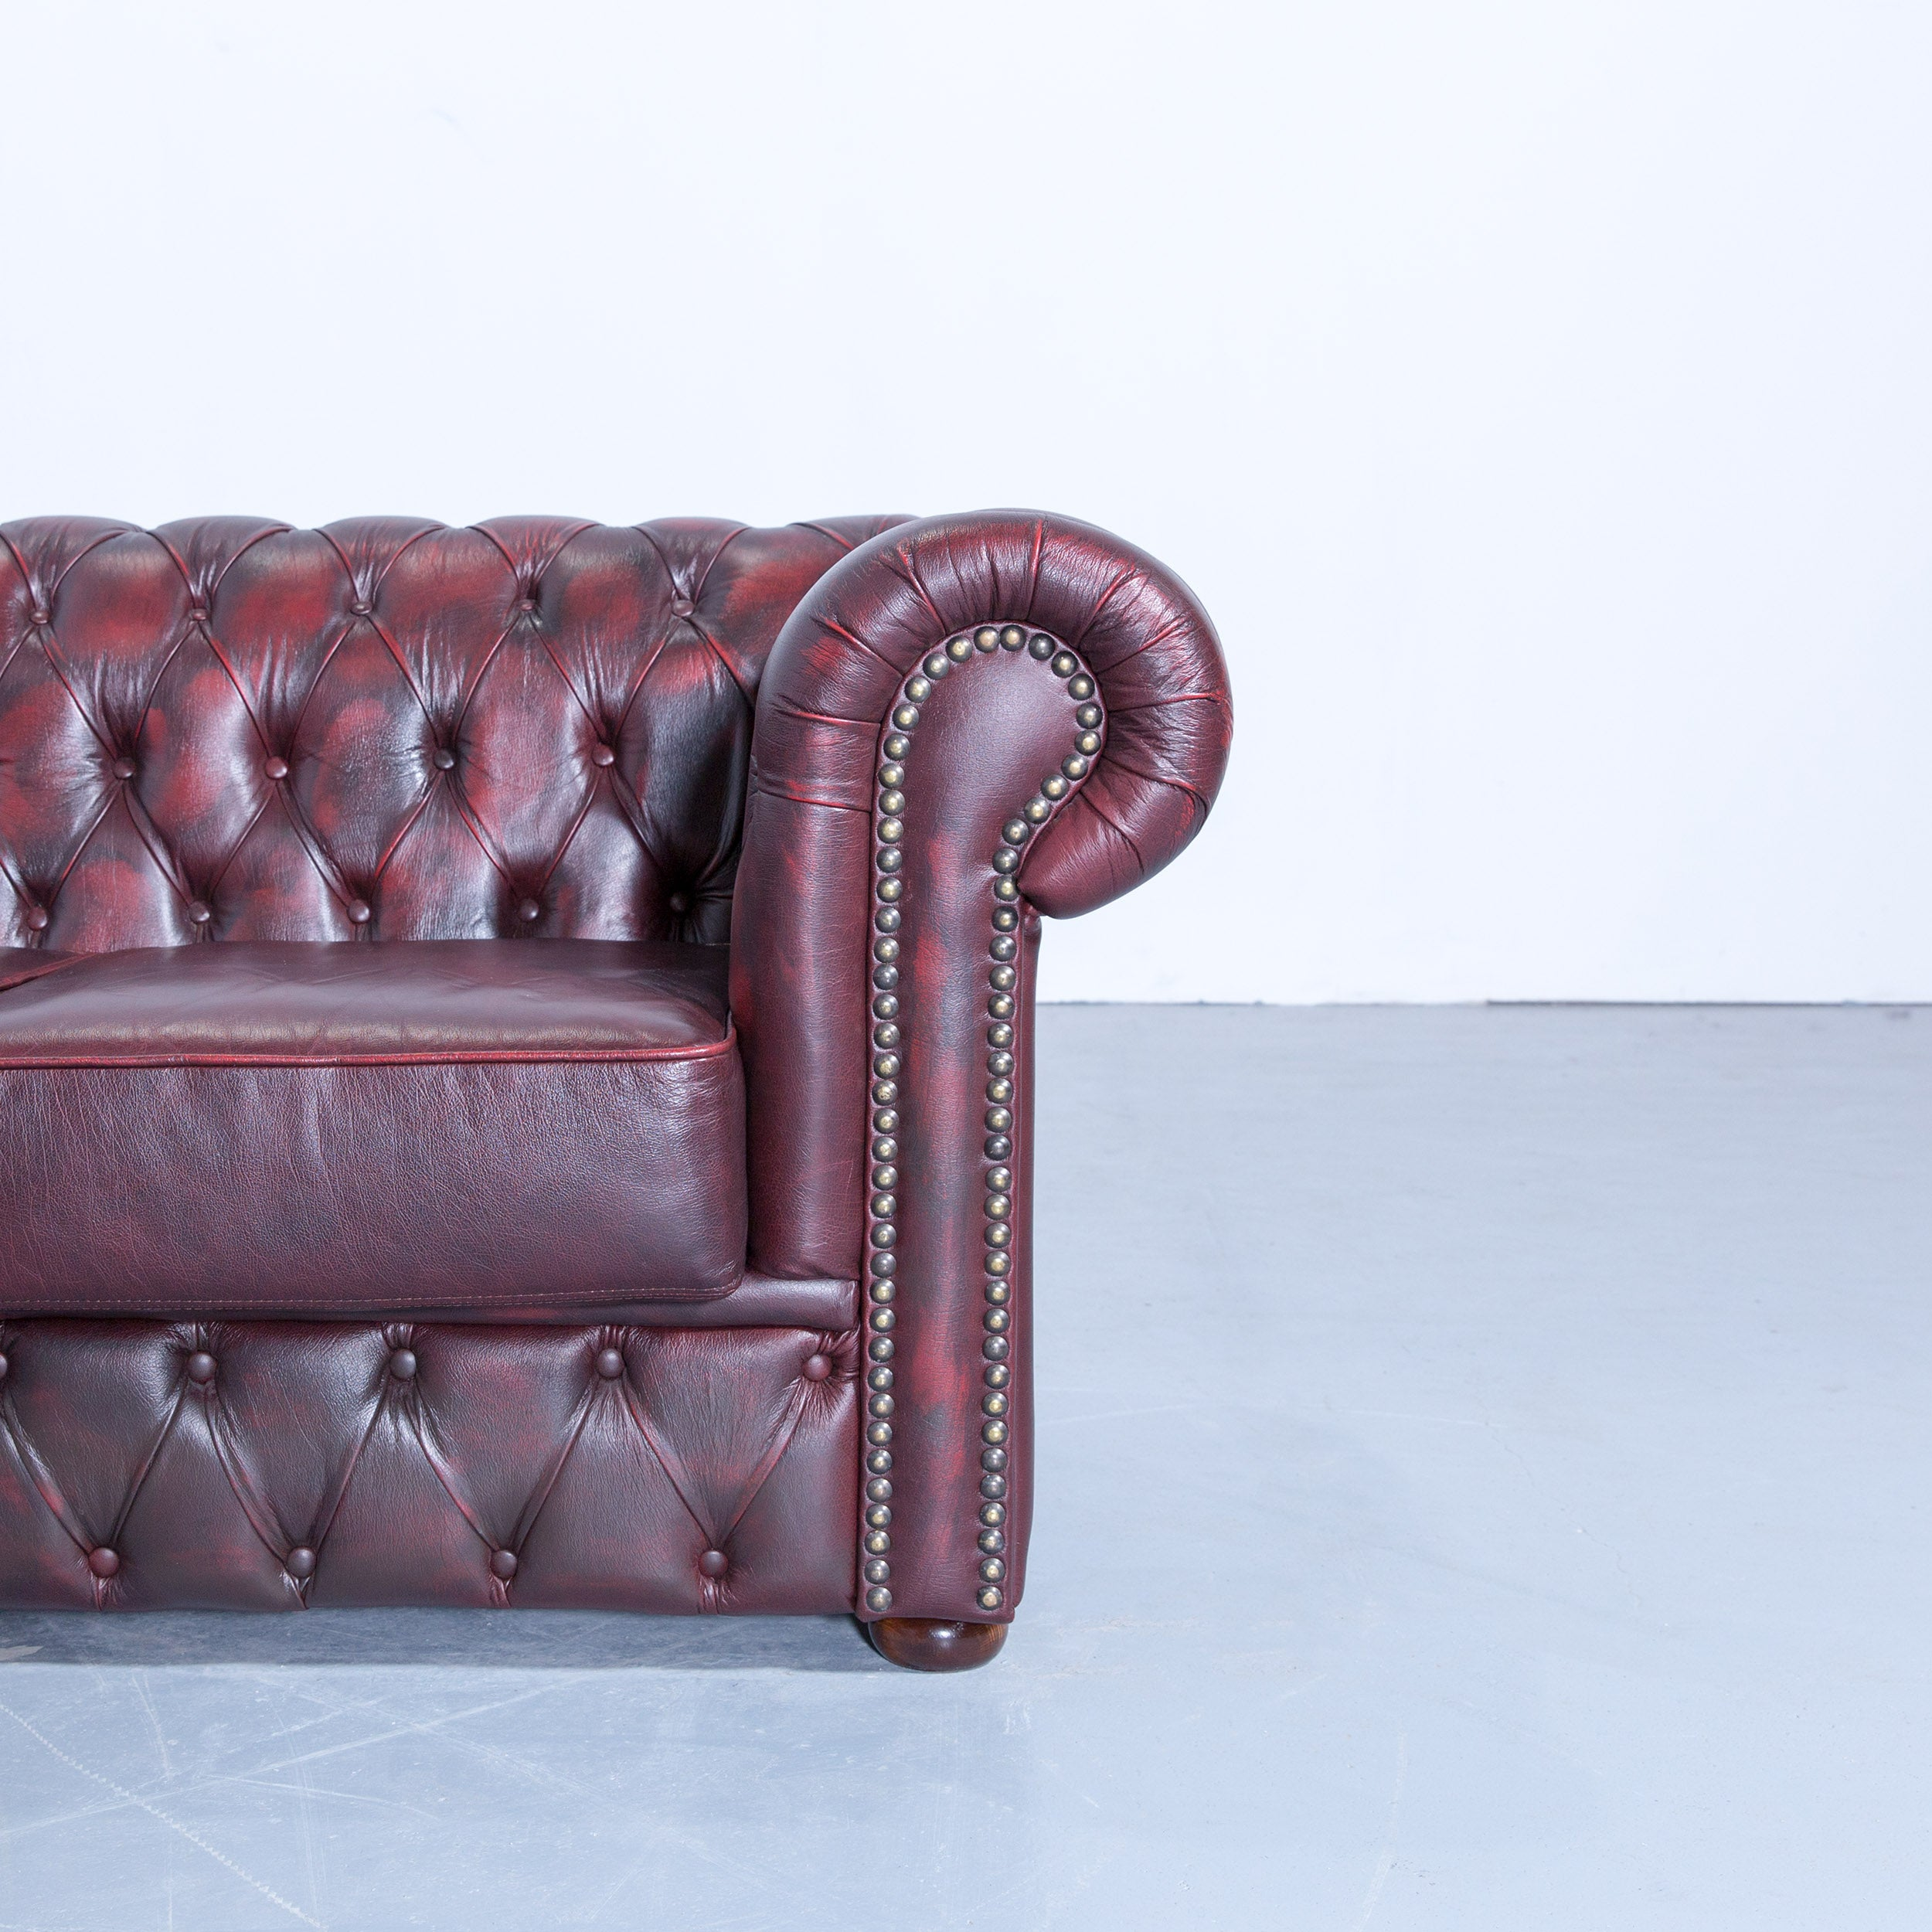 Chesterfield Sofa Leder Rot Rochester Chesterfield Corner Sofa And Footstool Oxblood Red Leather Couch Set